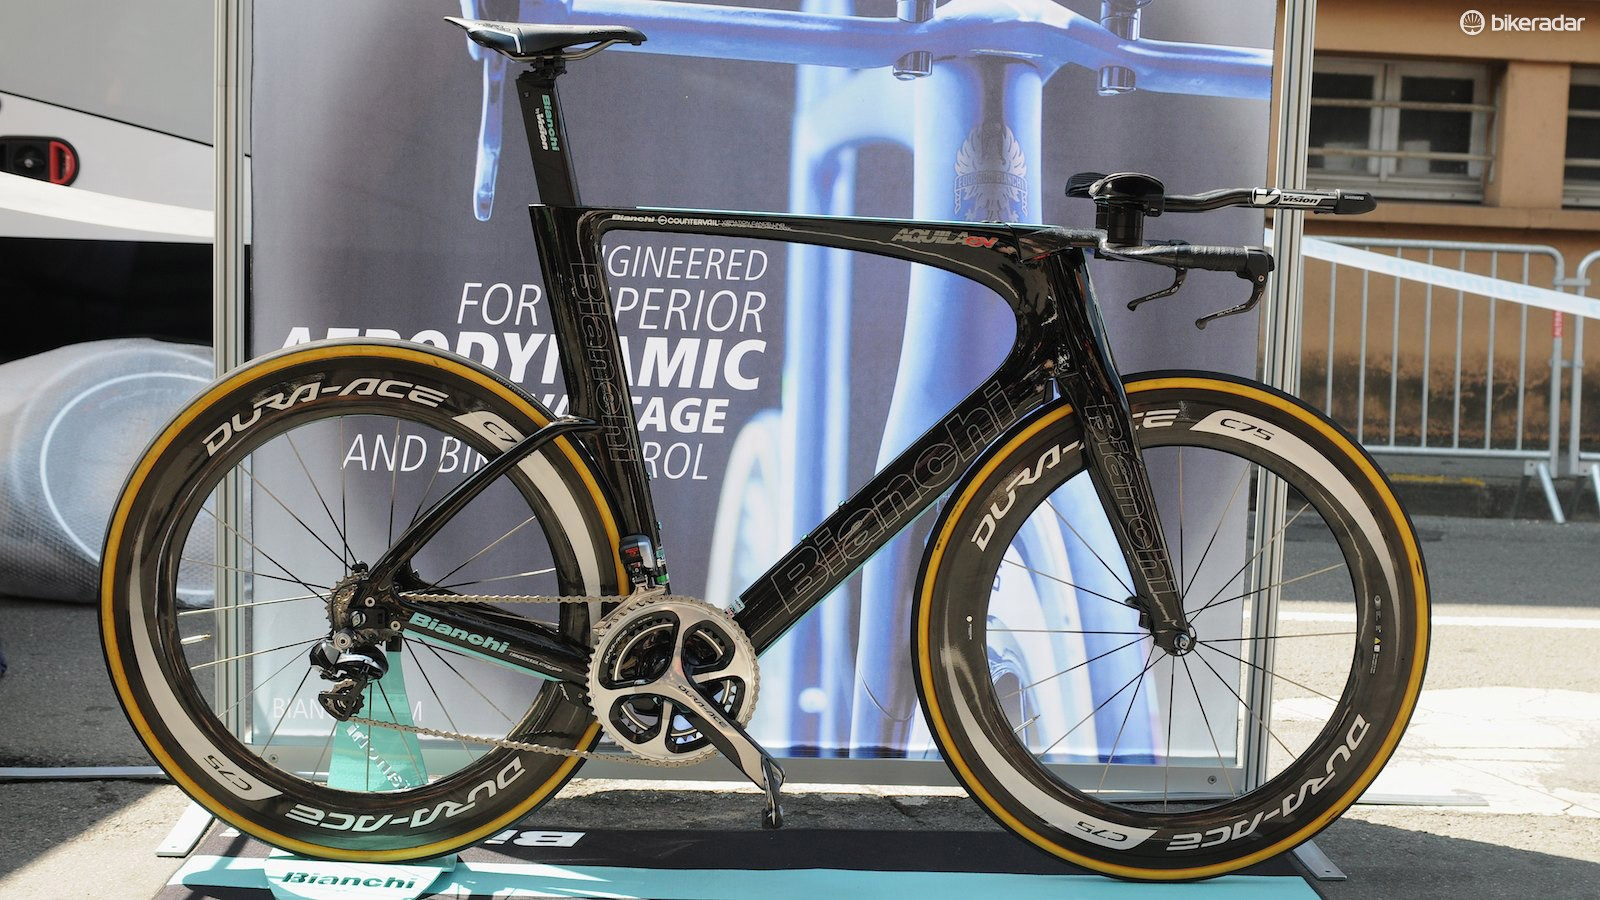 The Aquila CV replaces the Pico as Bianchi's premier time trial machine, and has an incredibly clean and integrated look